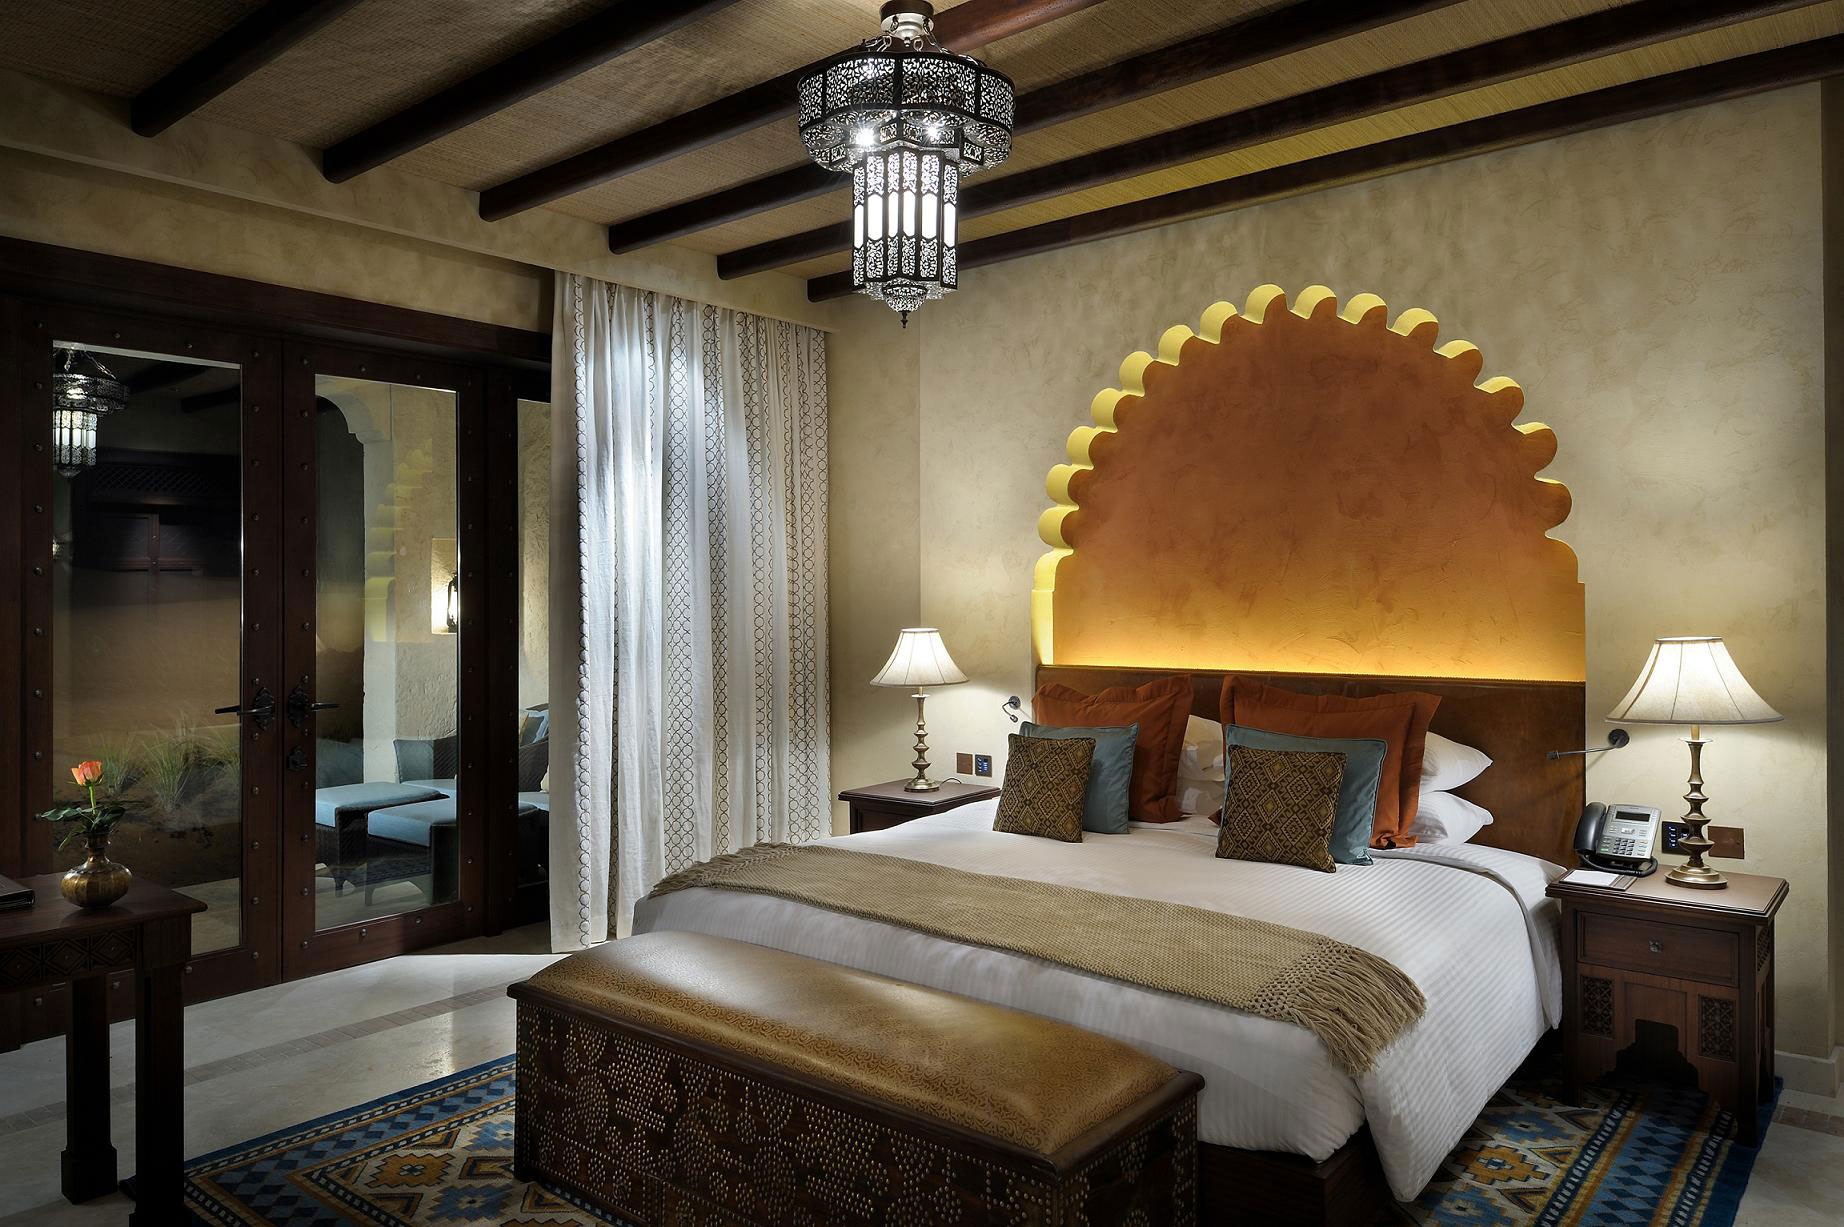 Arabic Bedroom Design Arabic Interior Design Decor Ideas And Photos